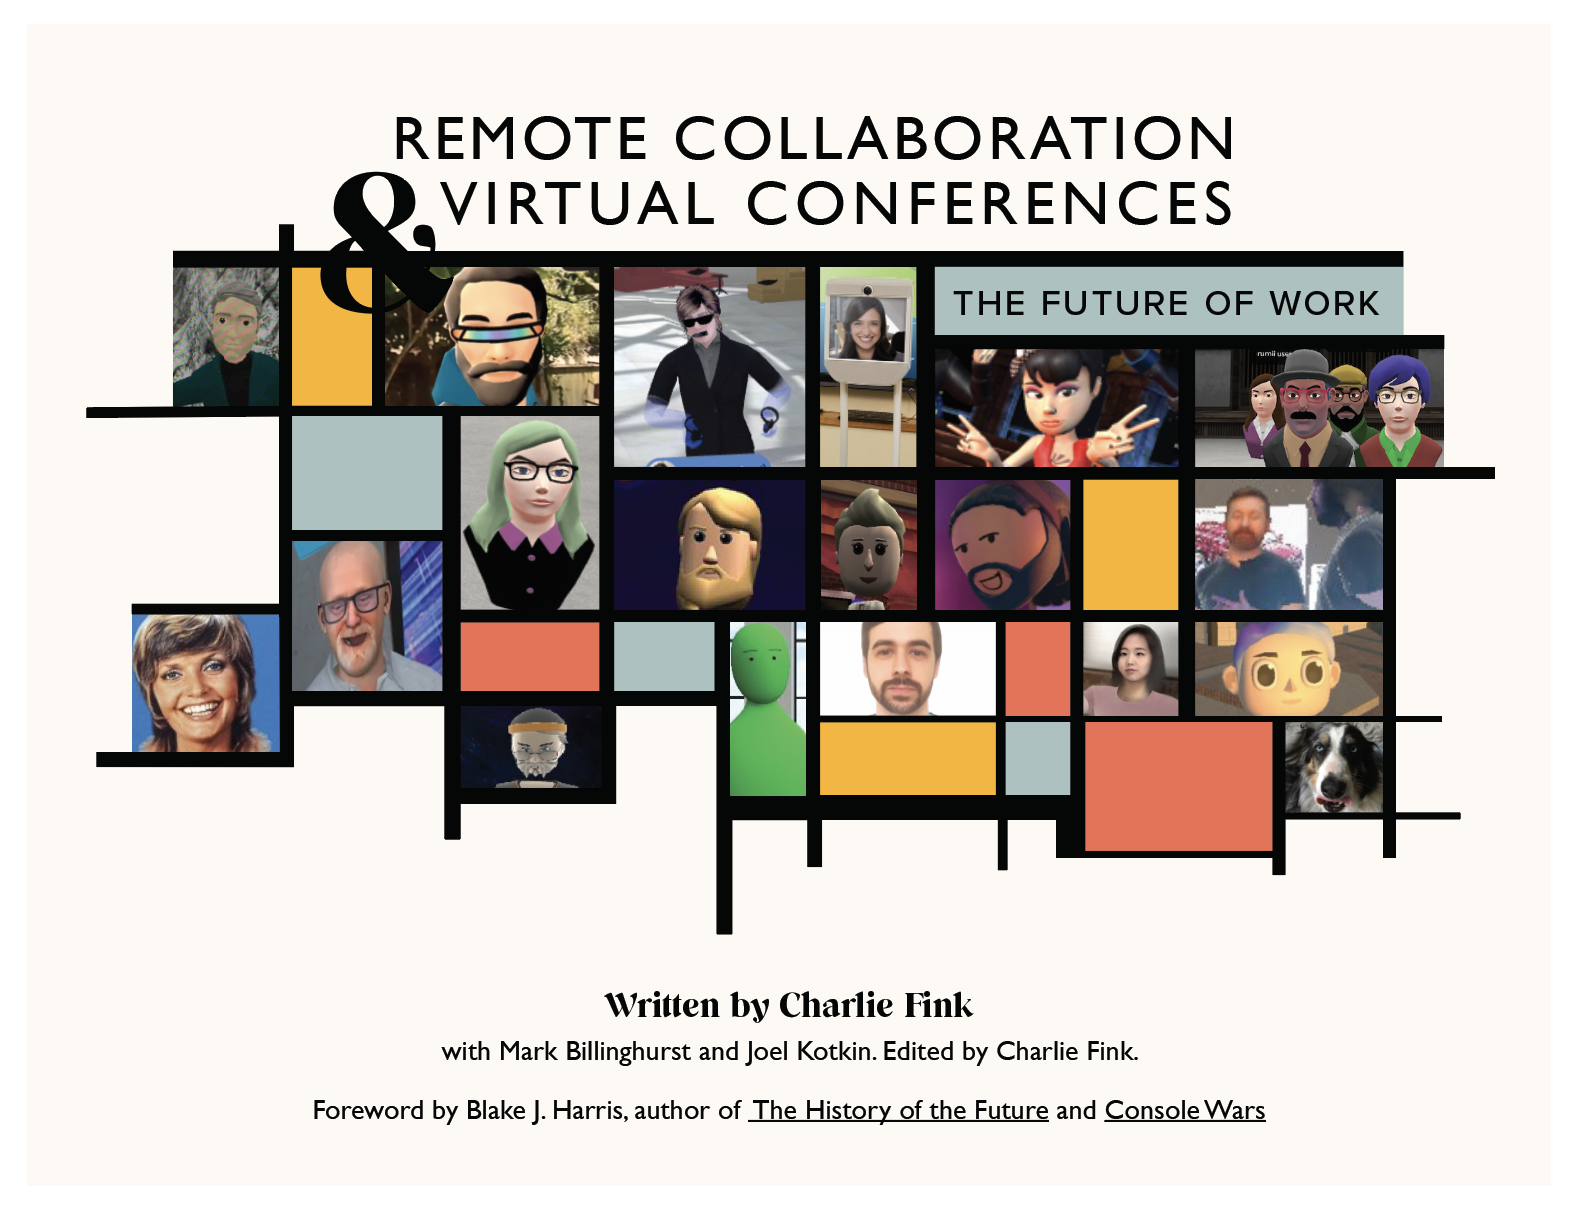 Charlie Fink's new book, Remote Collaboration and Virtual Conferences, The Future of Work.